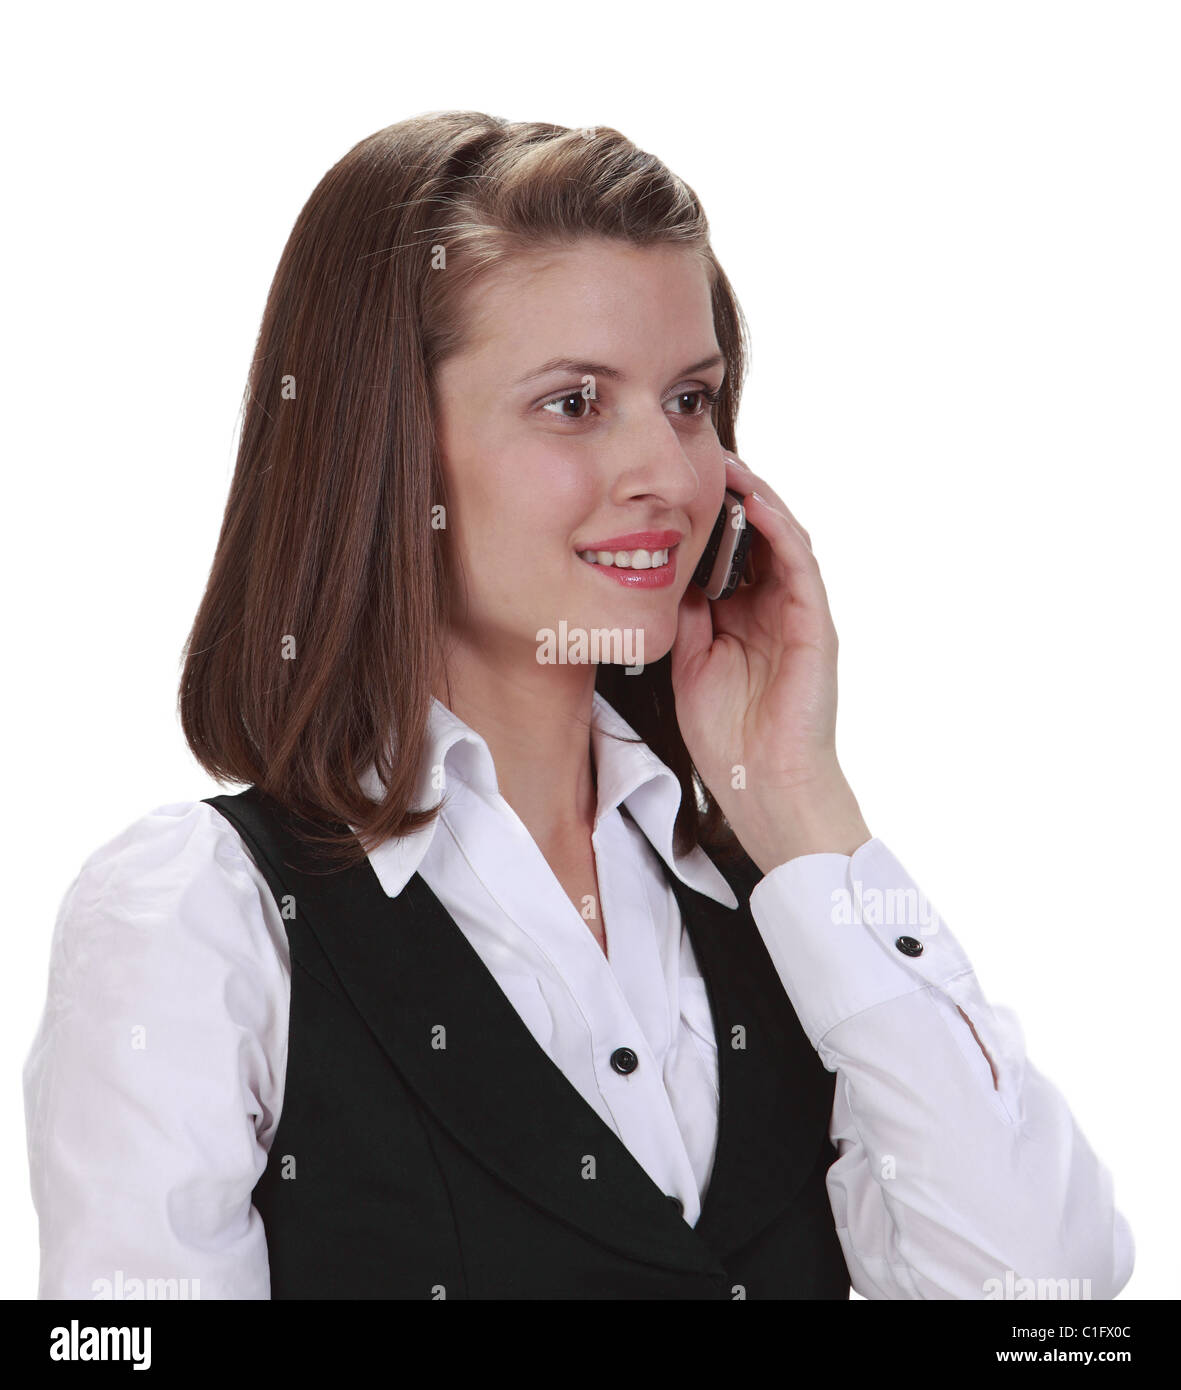 Portrait of a young woman on the phone, isolated against a white background. - Stock Image